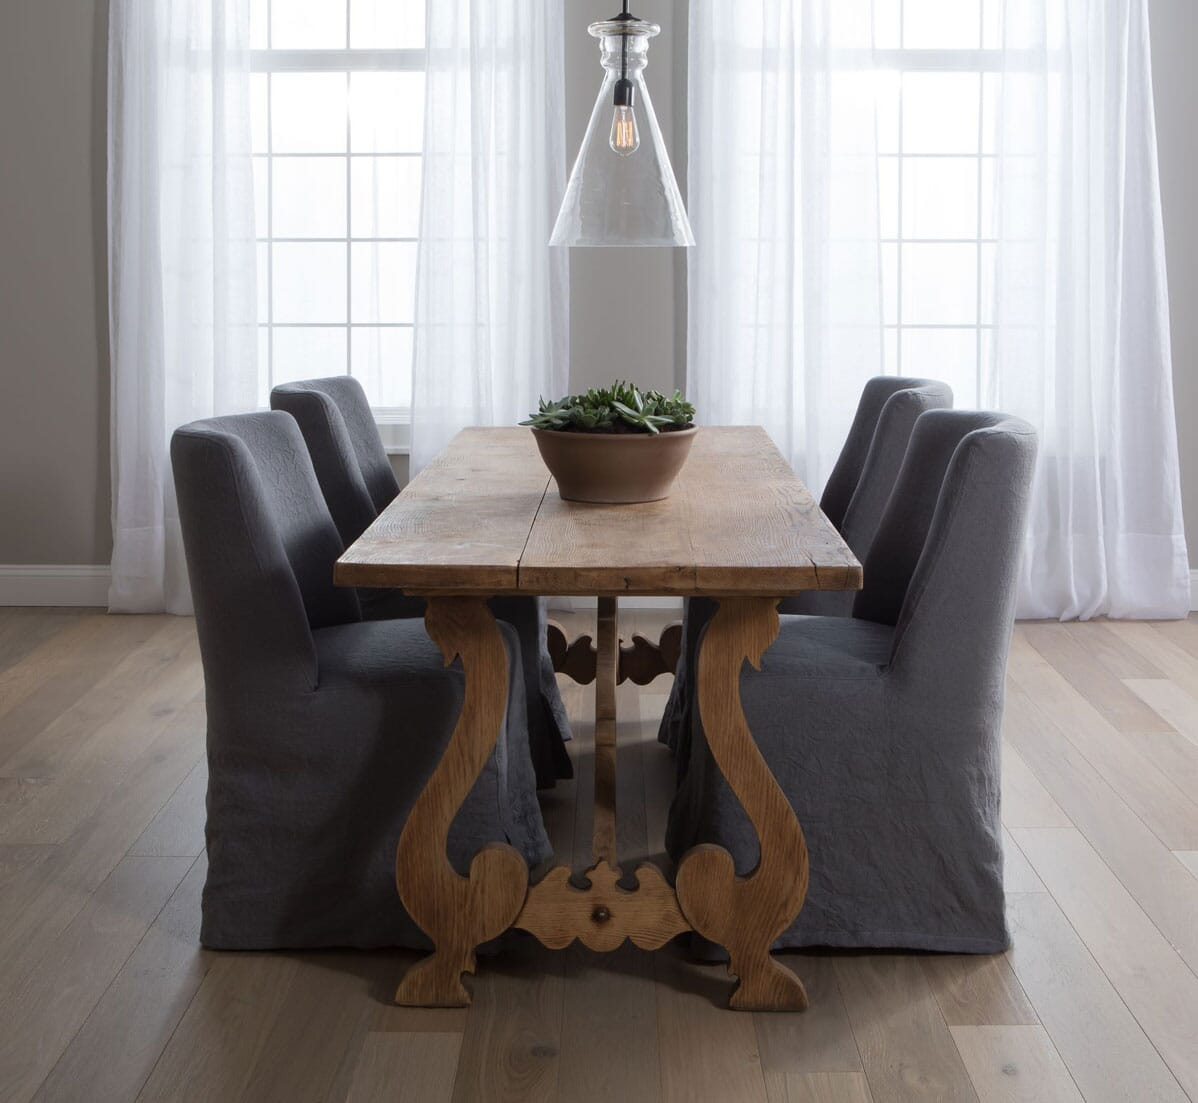 High End Dining Room Table U0026 Chairs | August Haven Furniture Furniture,  Home Décor, Interior Design Services, Free Consultations.